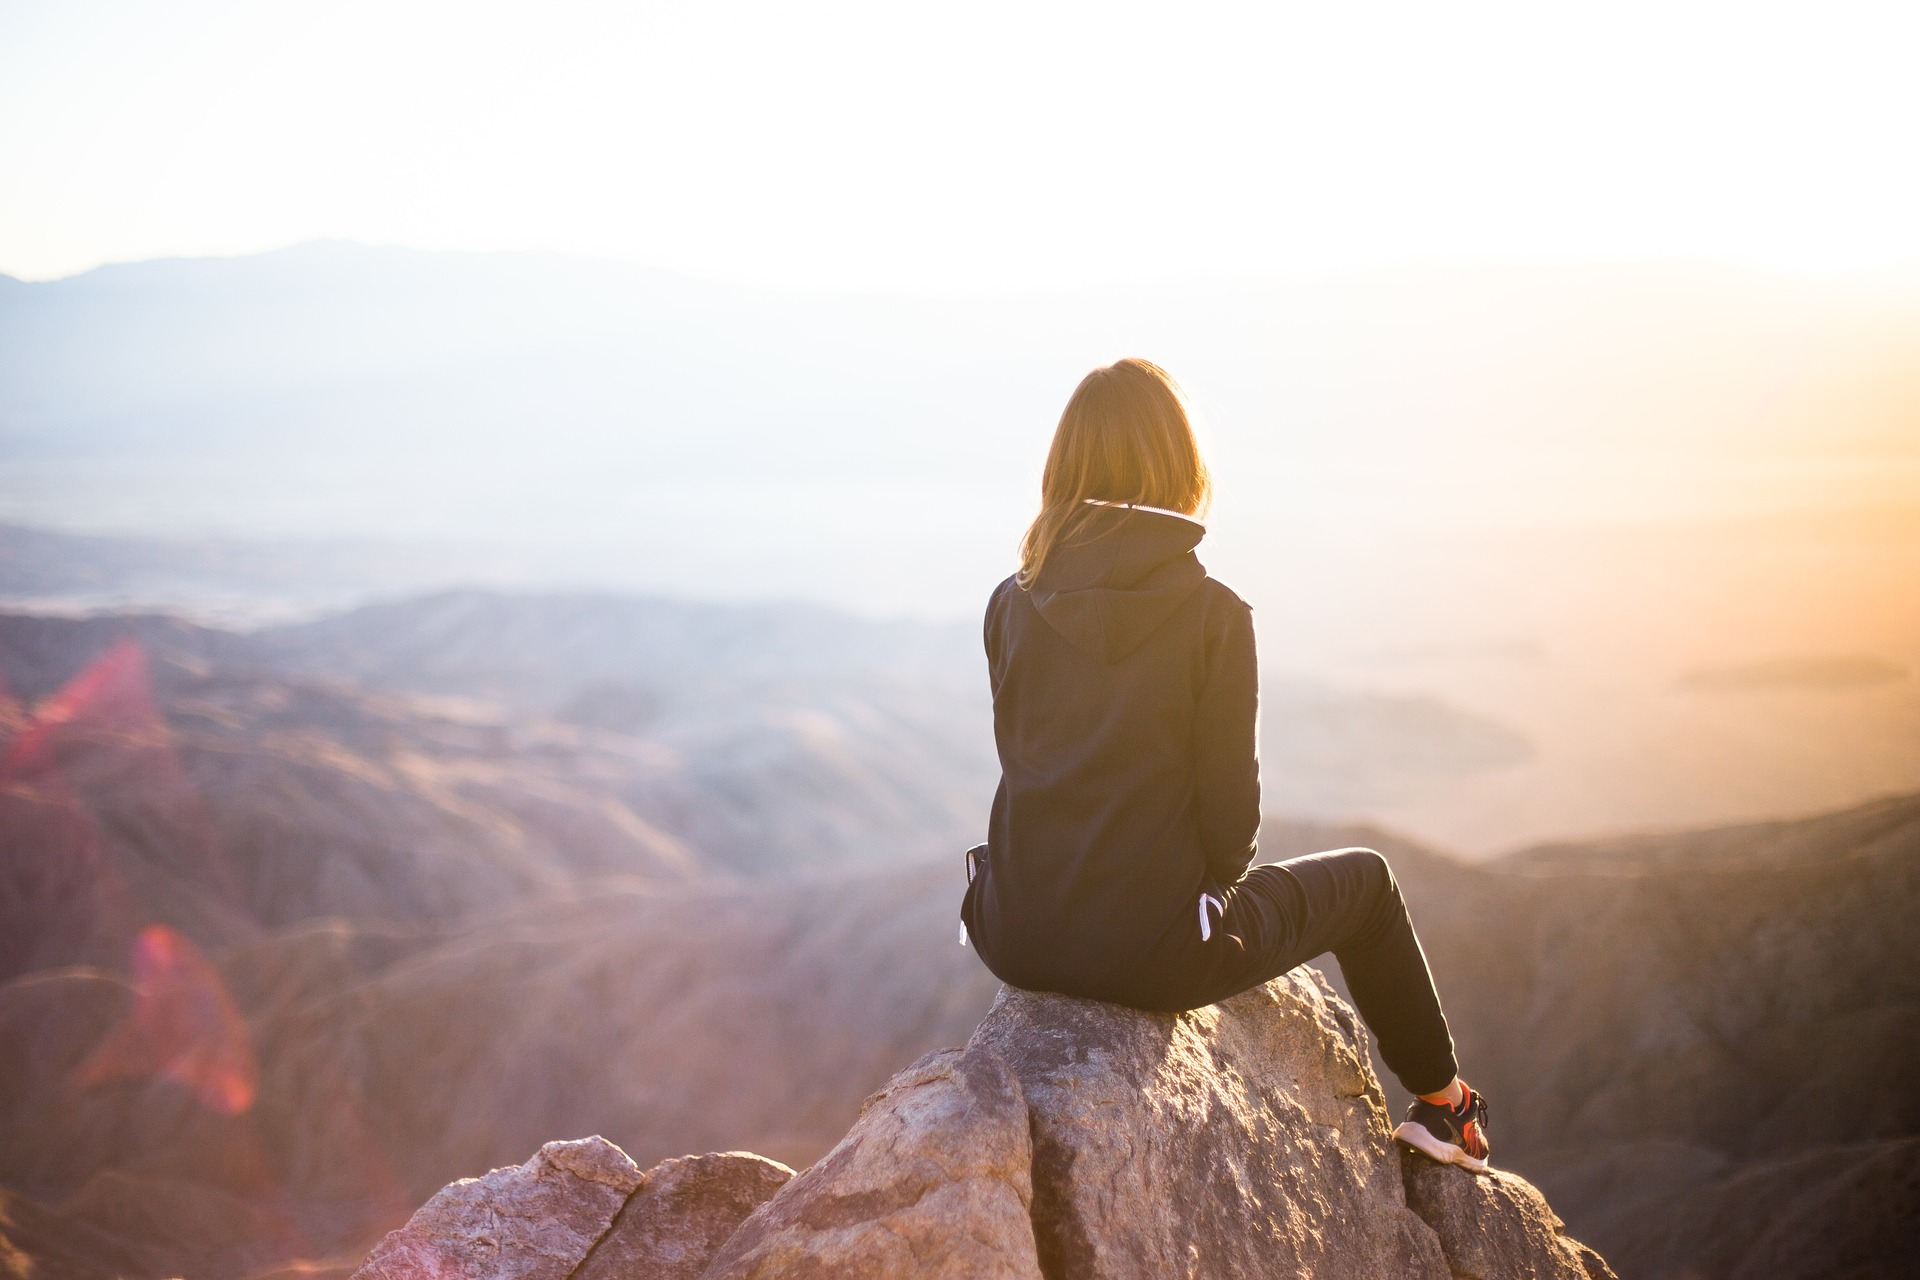 Woman reflecting on the side of a mountain.